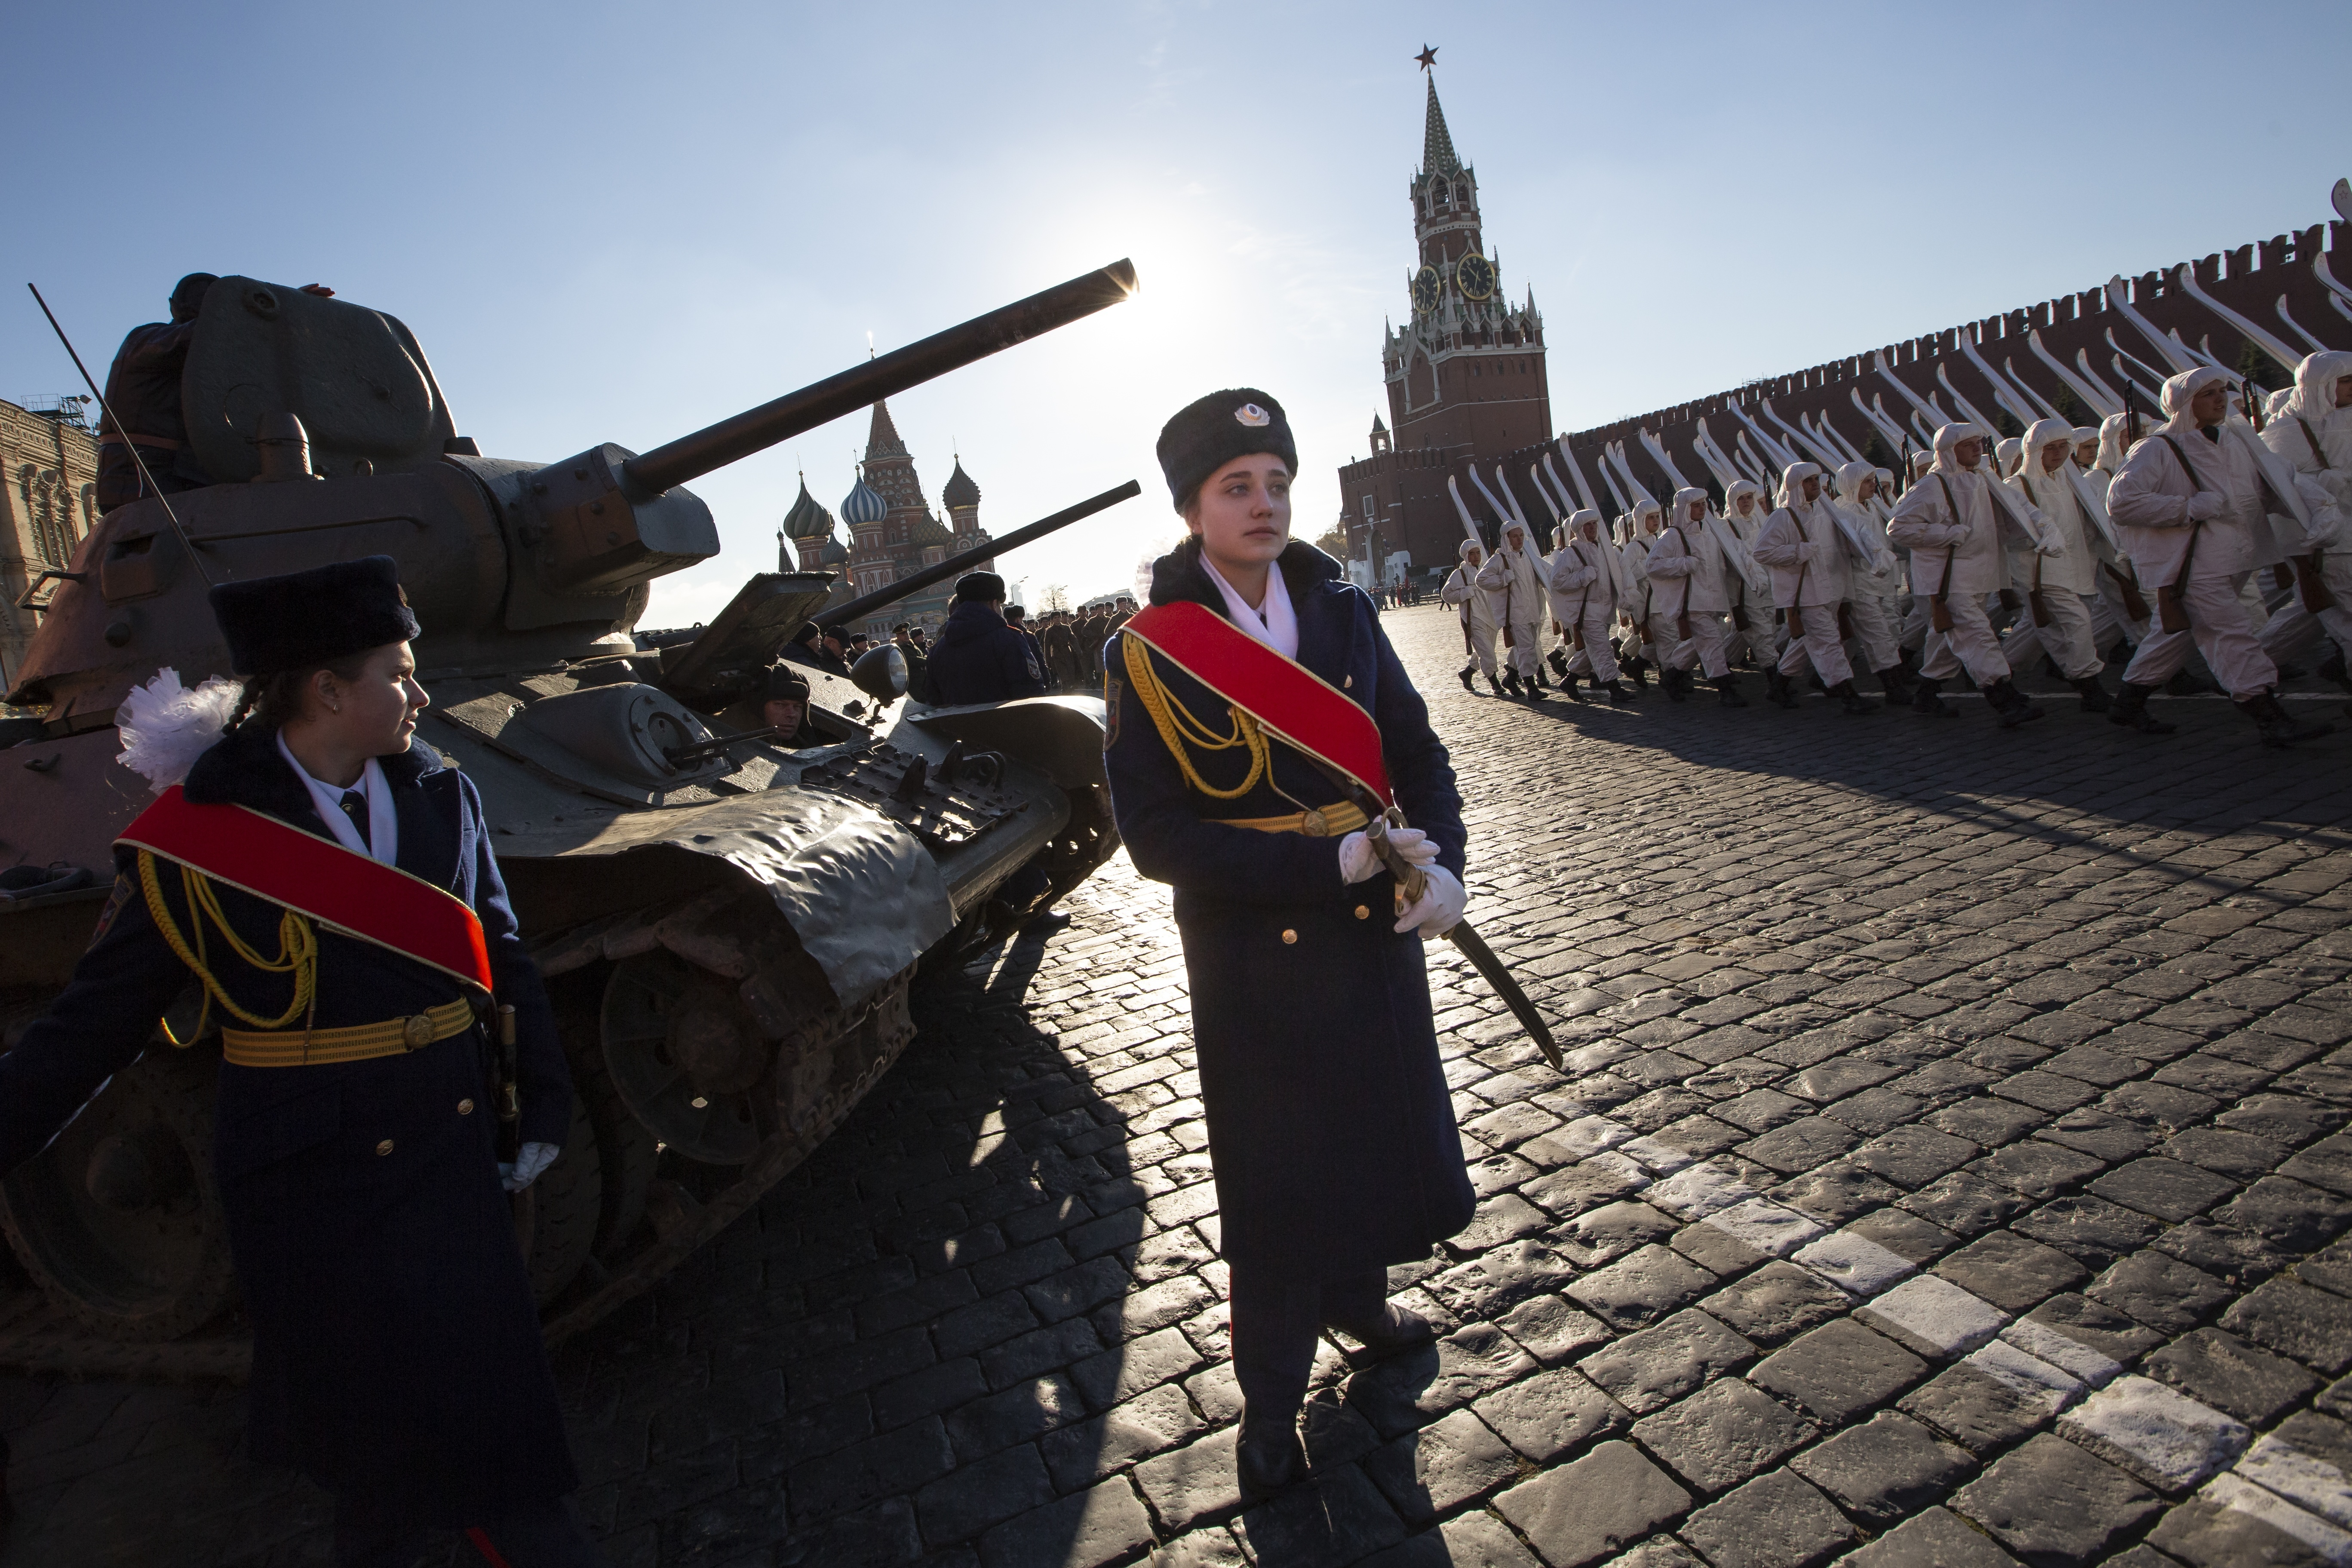 A Russian cadet stands in front of a legendary Soviet tank T-34 as other soldiers dressed in Red Army World War II uniforms march during a rehearsal of the Nov. 7 parade in Red Square, with St. Basil Cathedral and the Spasskaya Tower in the background, in Moscow, Russia, Monday, Nov. 5, 2018. The parade marks the 77th anniversary of a World War II historic parade in Red Square and honored the participants in the Nov. 7, 1941 parade who headed directly to the front lines to defend Moscow from the Nazi forces. (AP Photo/Alexander Zemlianichenko)